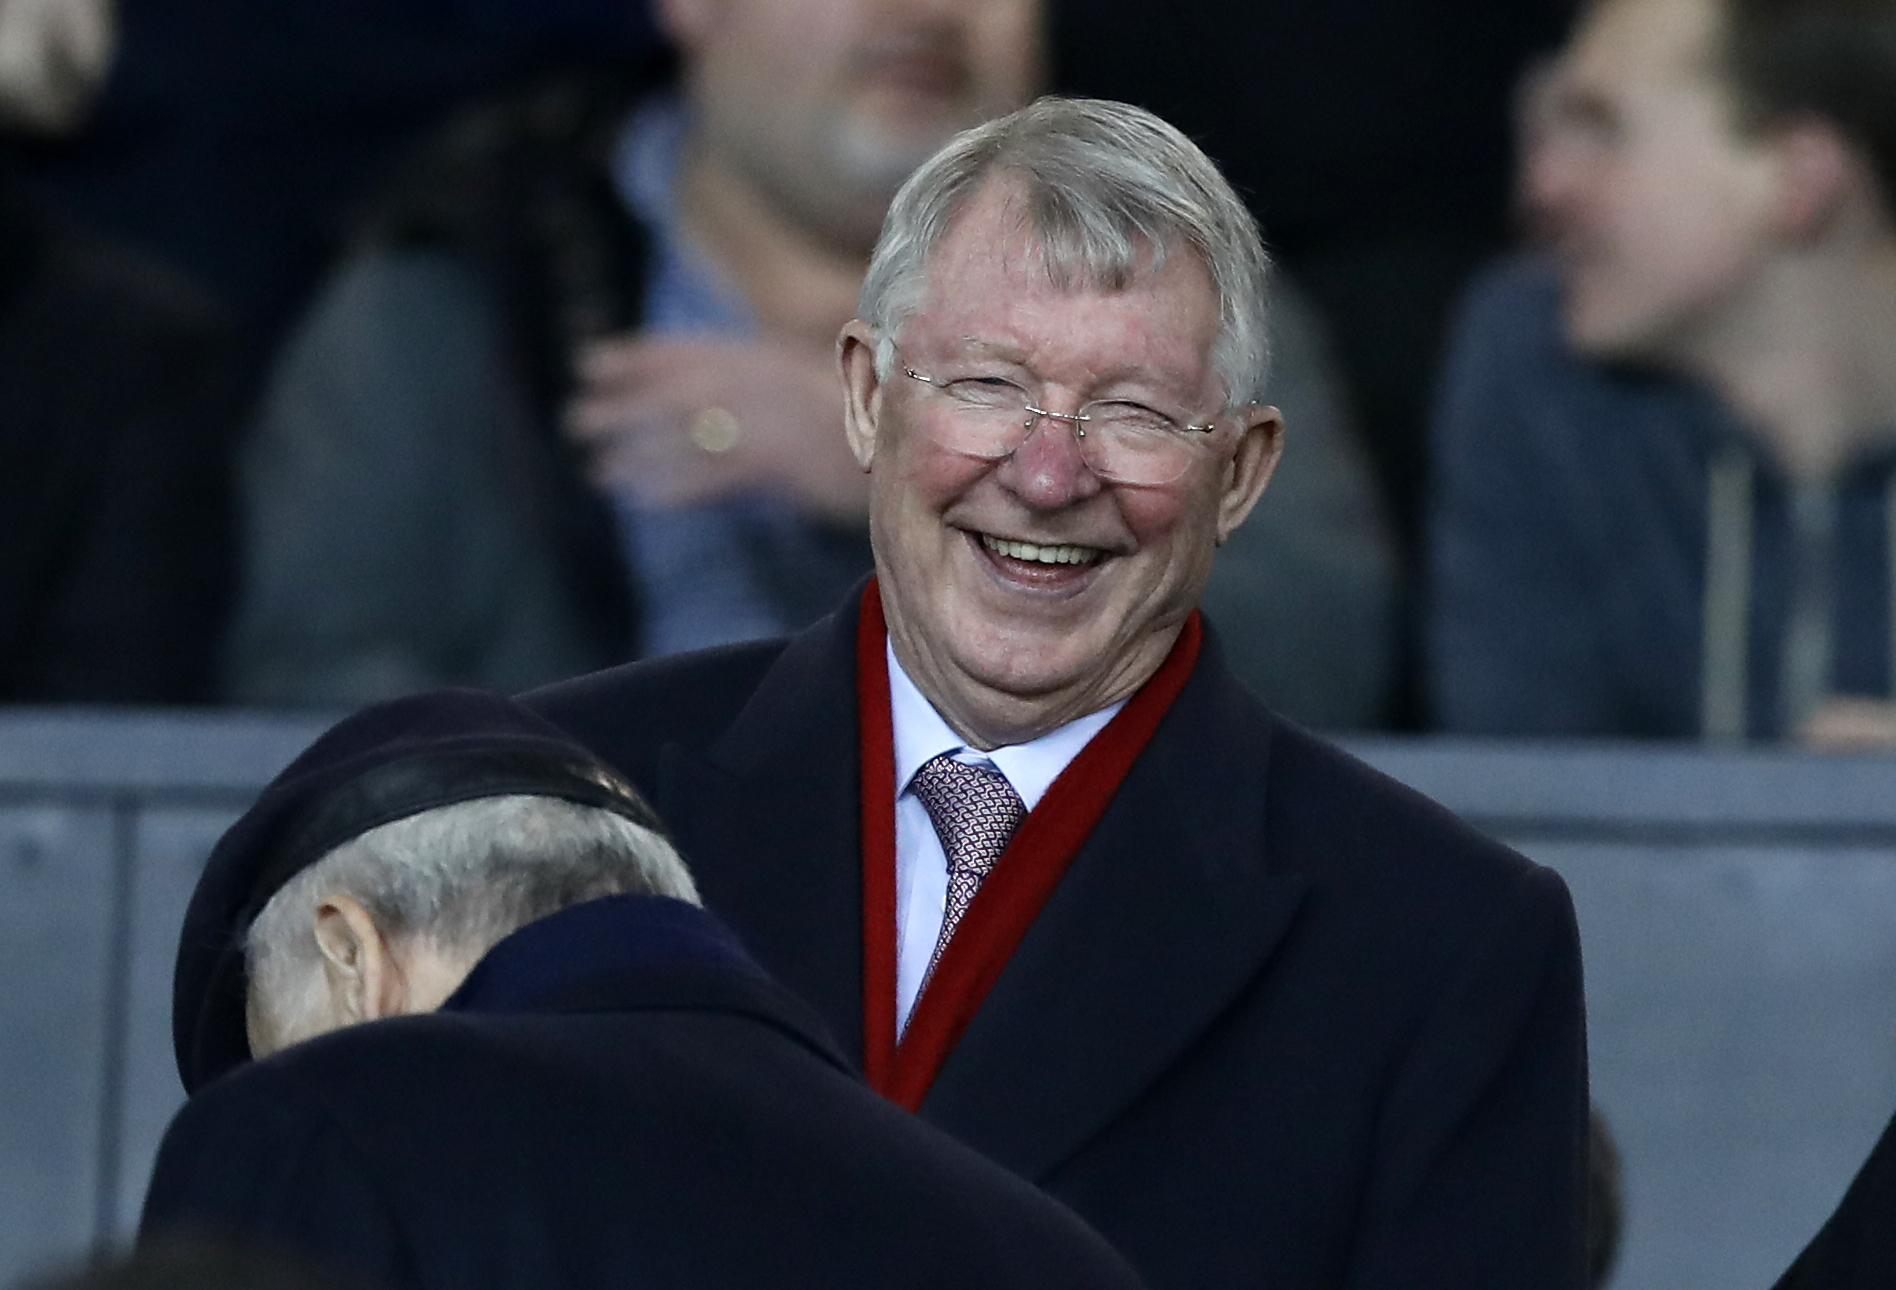 Manchester United legend Ferguson sends message to NHS workers